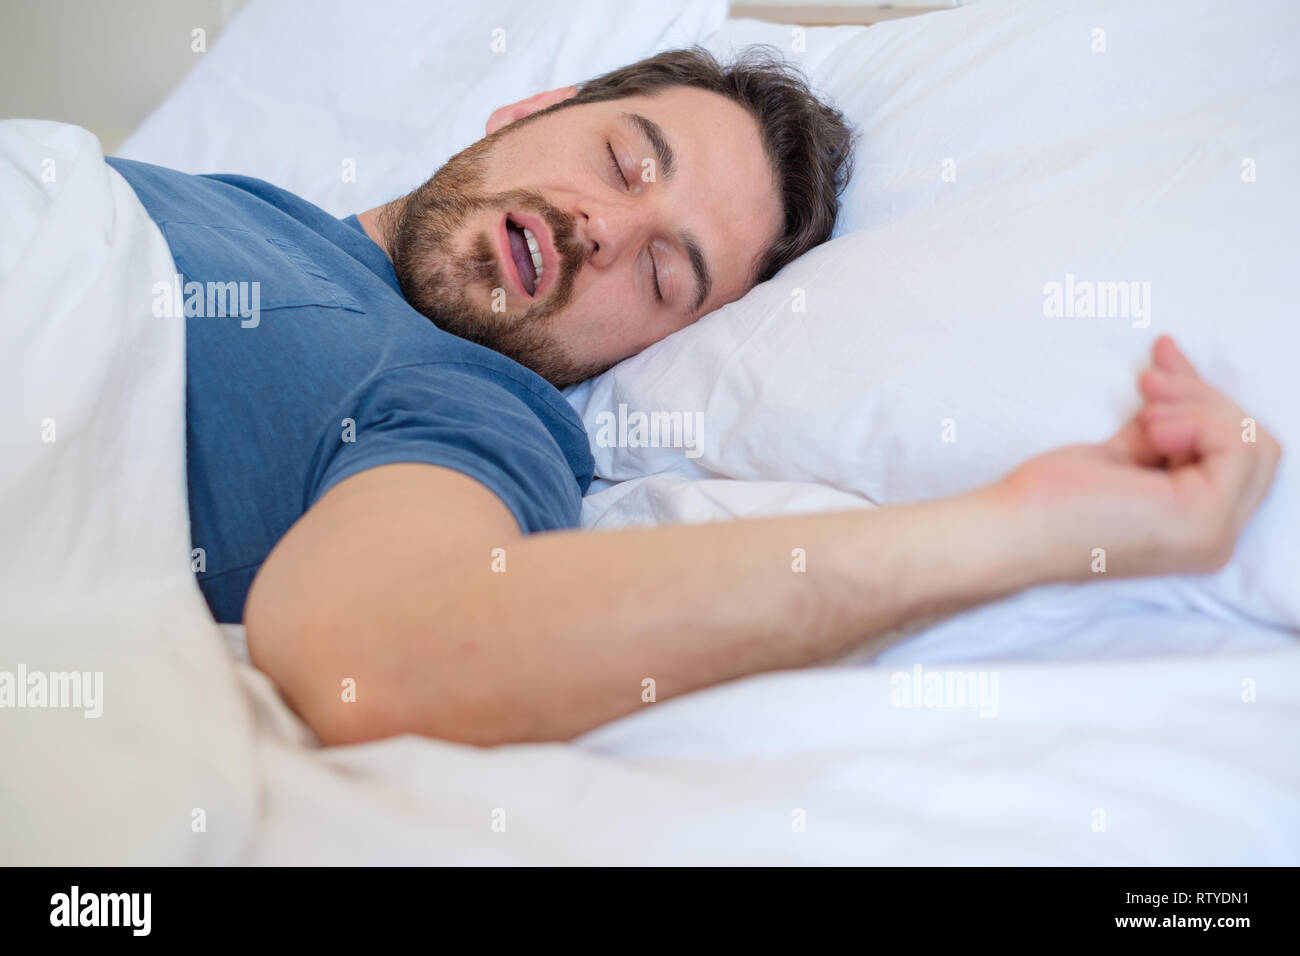 Tired man sleeping and snoring loudly in the bed - Stock Image